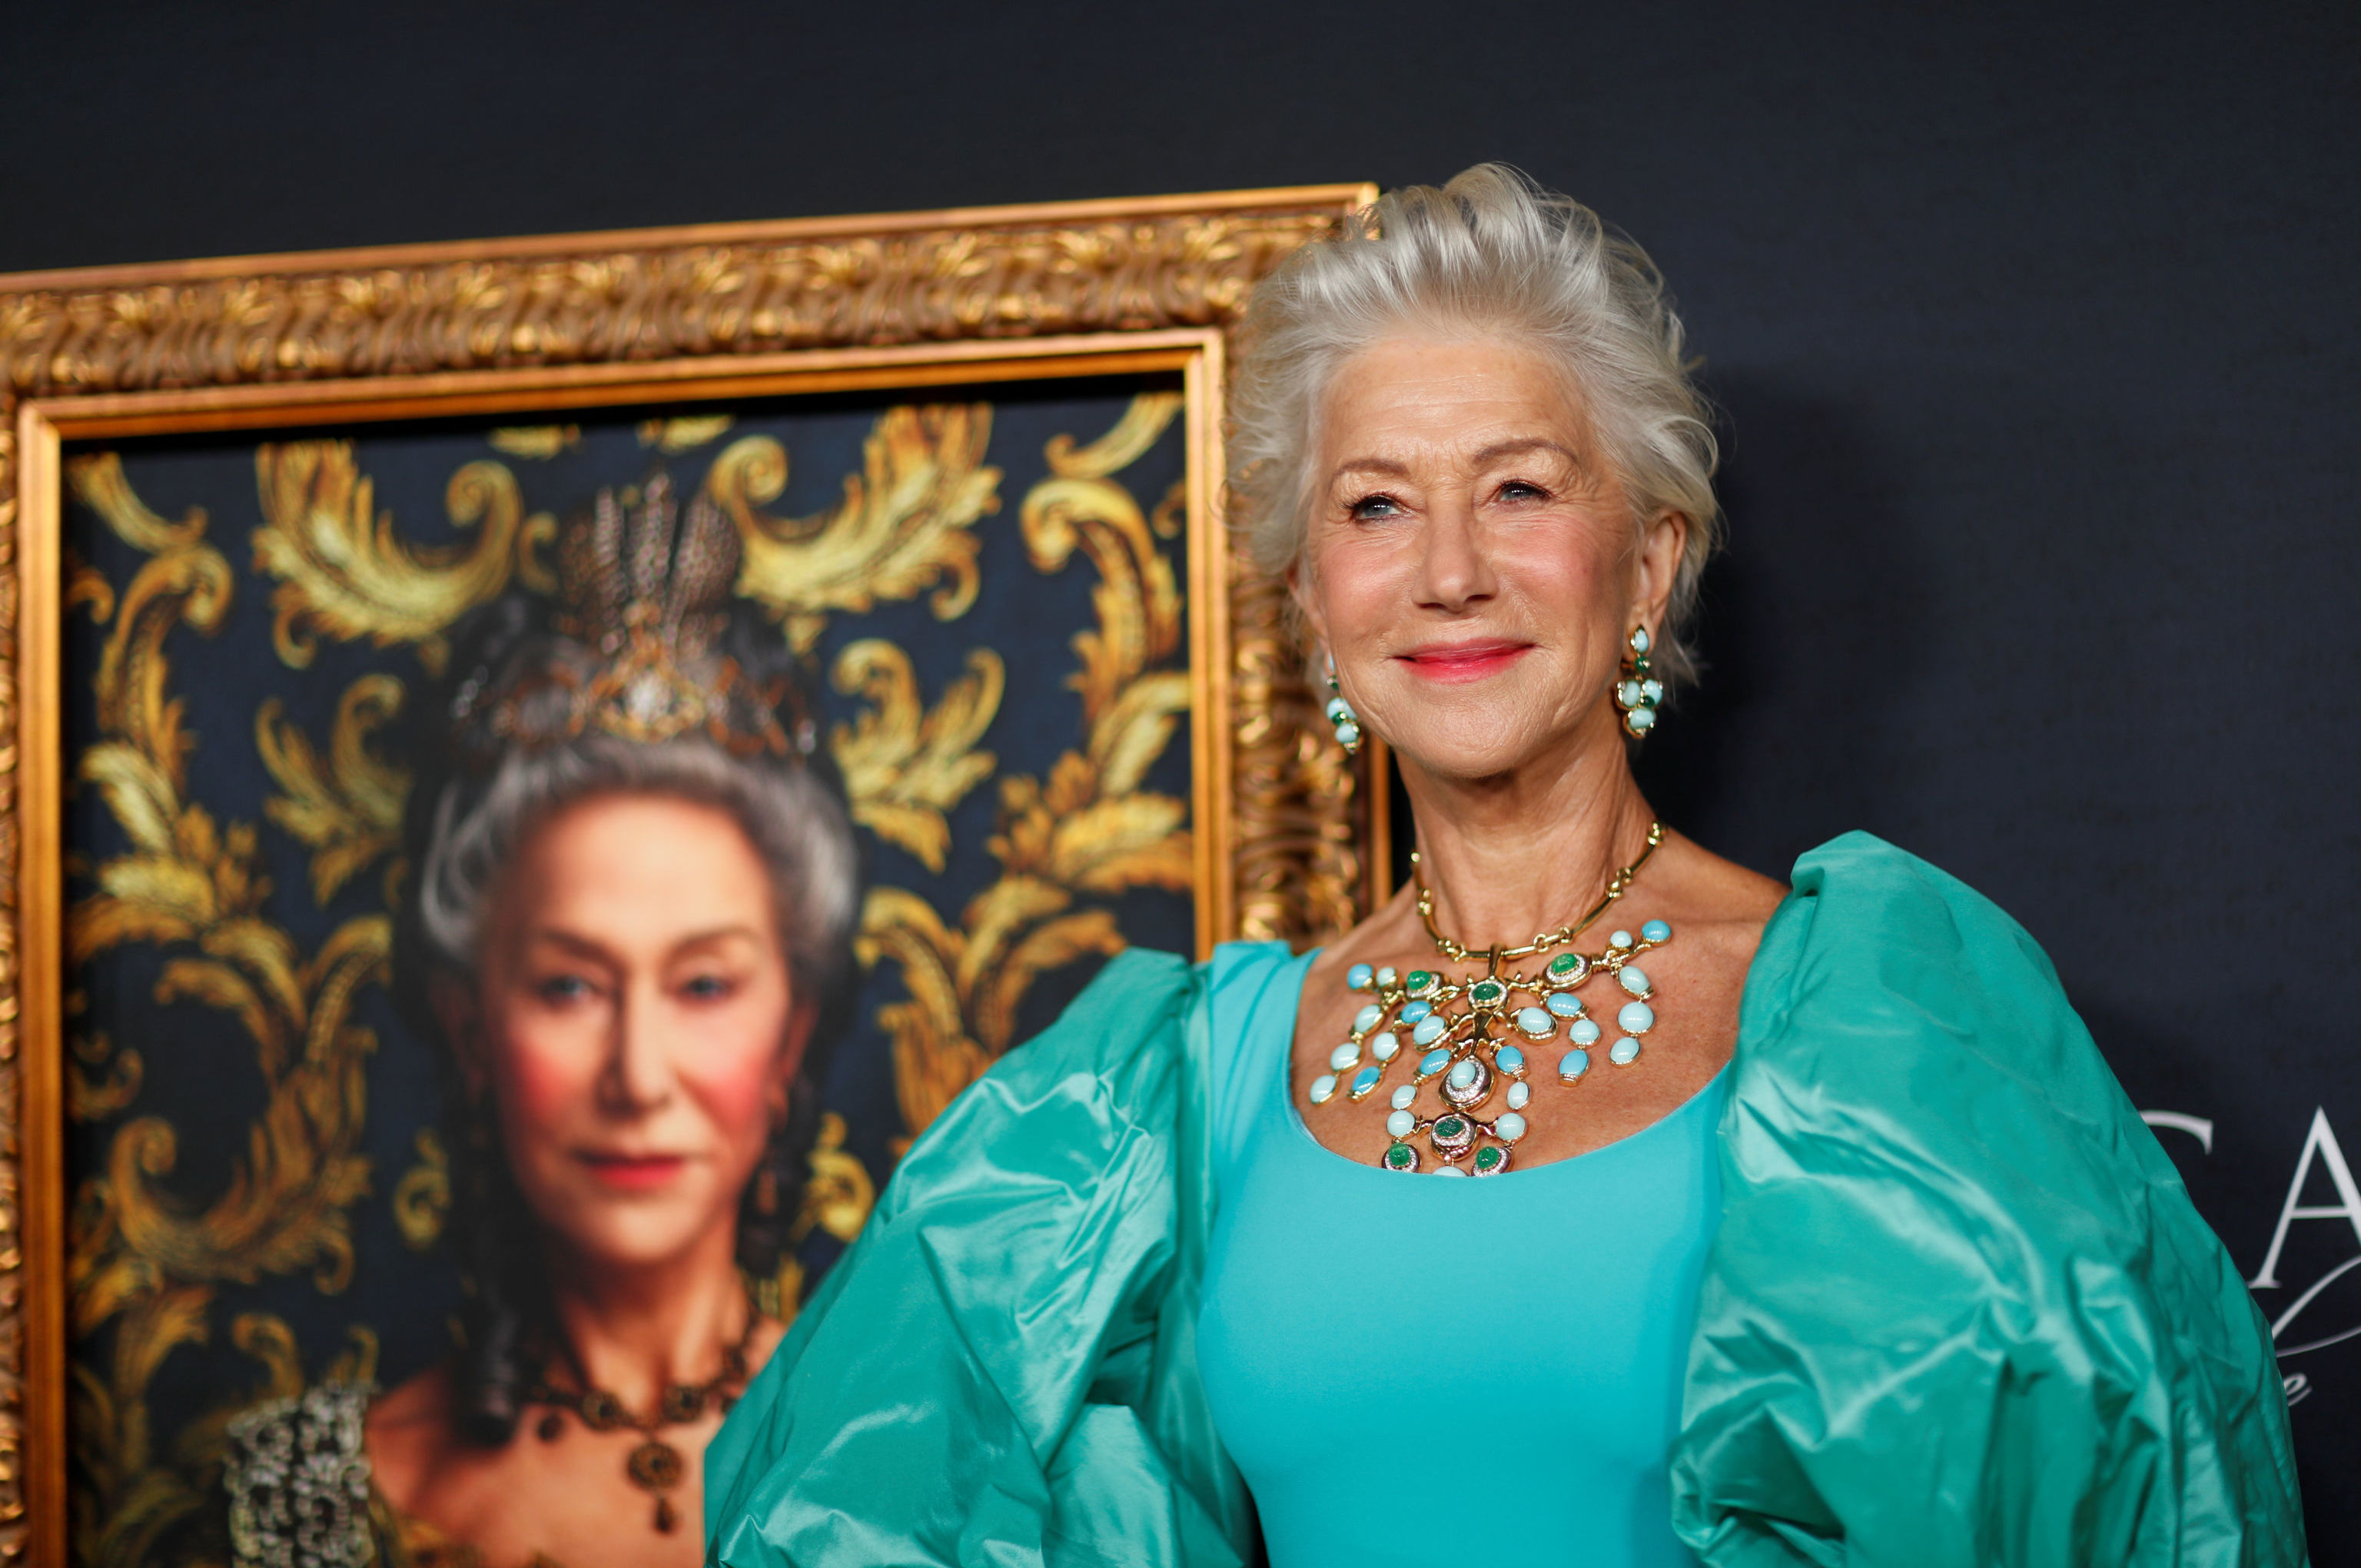 """Cast member Helen Mirren attends a premiere for the HBO miniseries """"Catherine the Great"""" at the Hammer Museum in Los Angeles, California, U.S., October 17, 2019"""